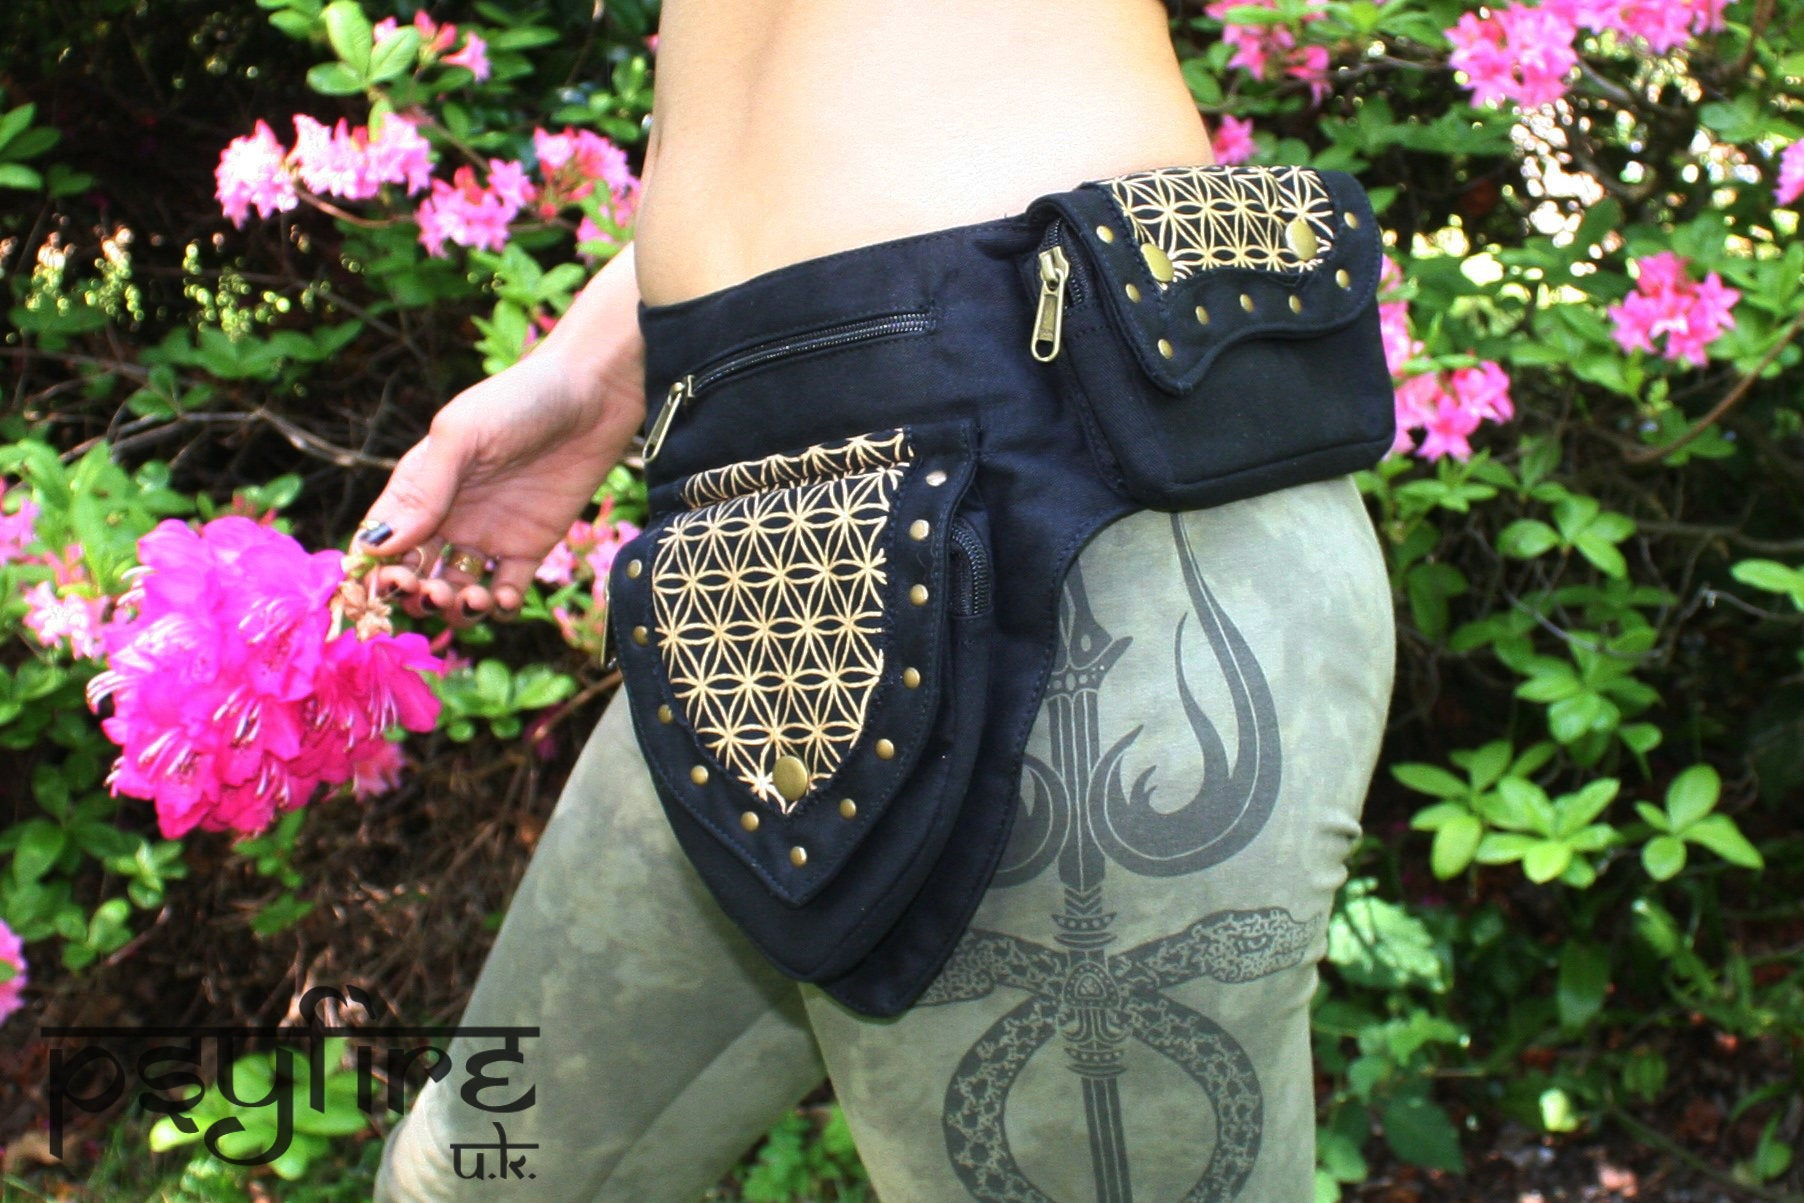 FLOWER OF LIFE Belt - Festival Belt, Fanny Pack, Pocket Belt, Psy Hip Bag, Psytrance Belt, Utility